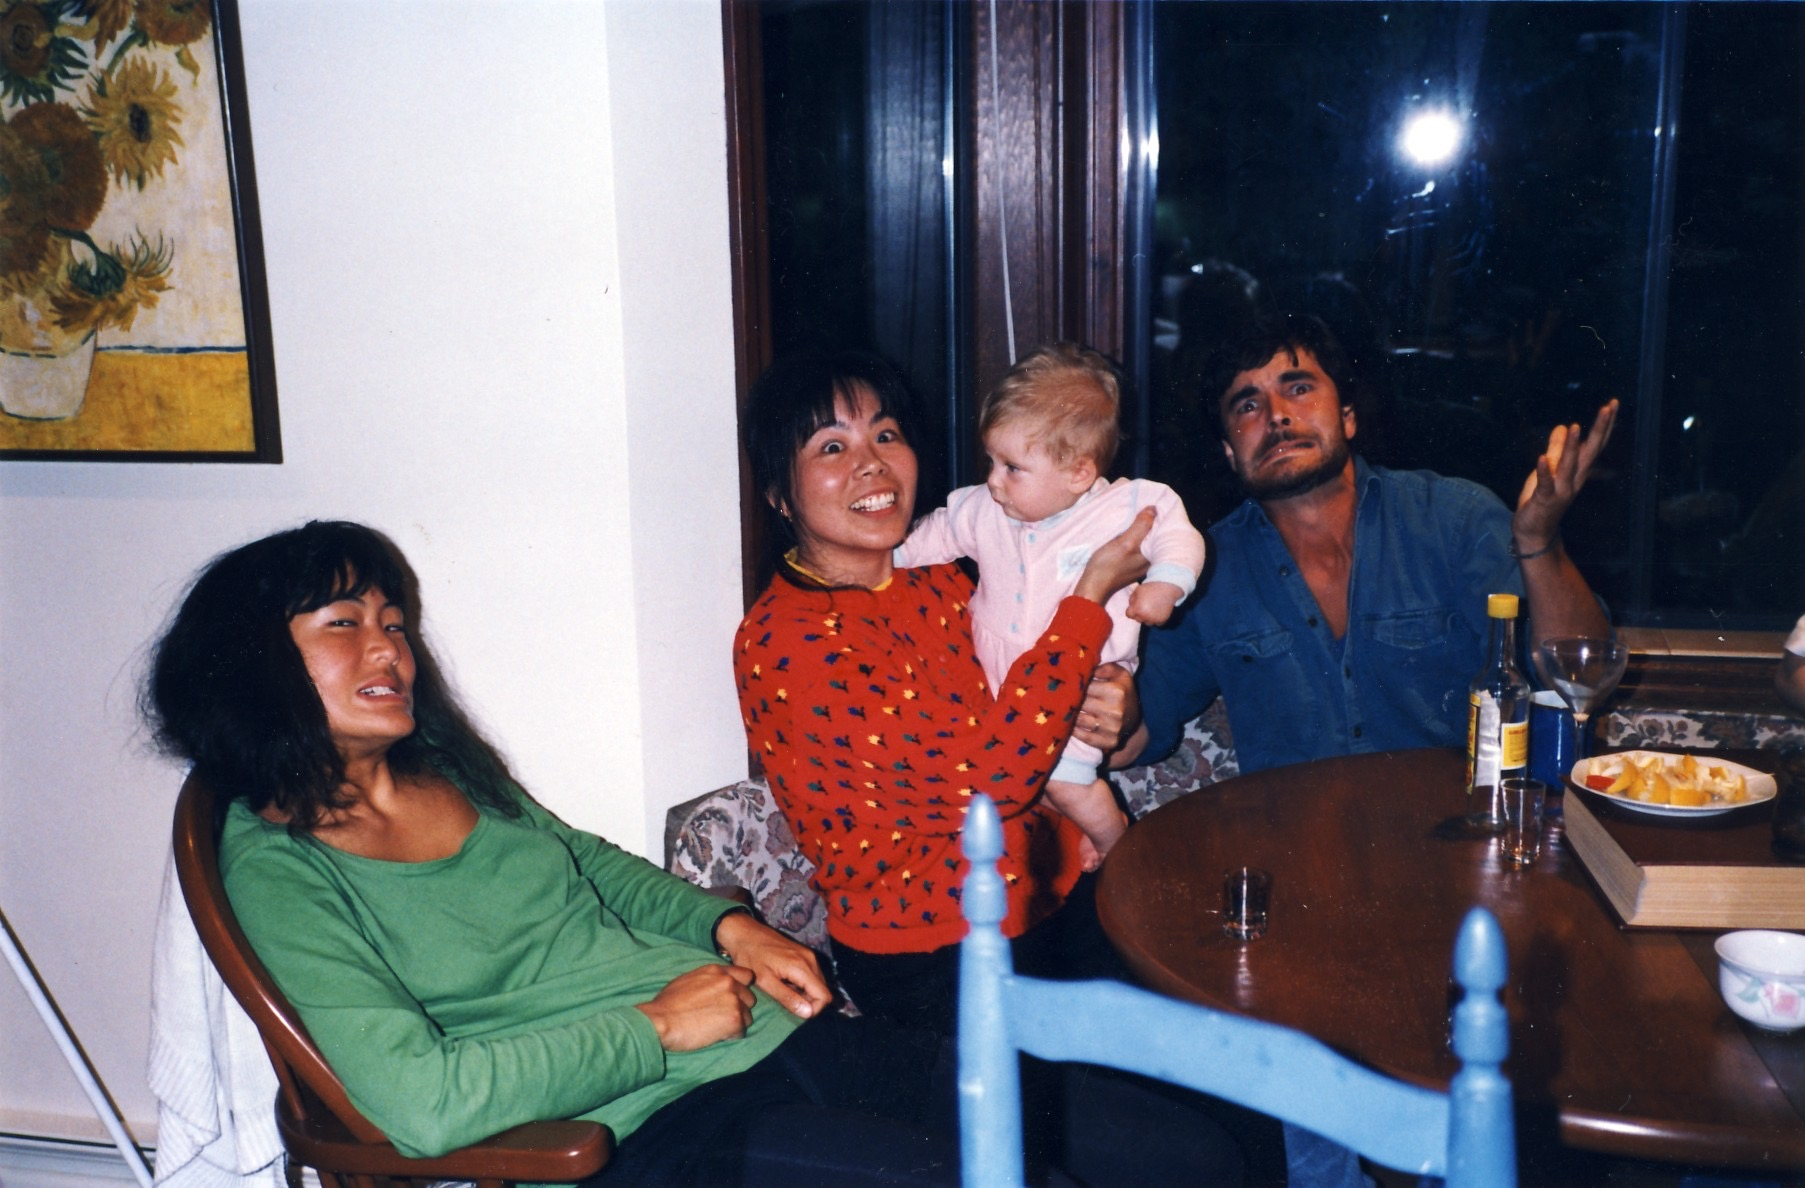 Mescal-time at my parents' place in Victoria. From left: Jackie, Ruby holding niece Jill, Rob ...